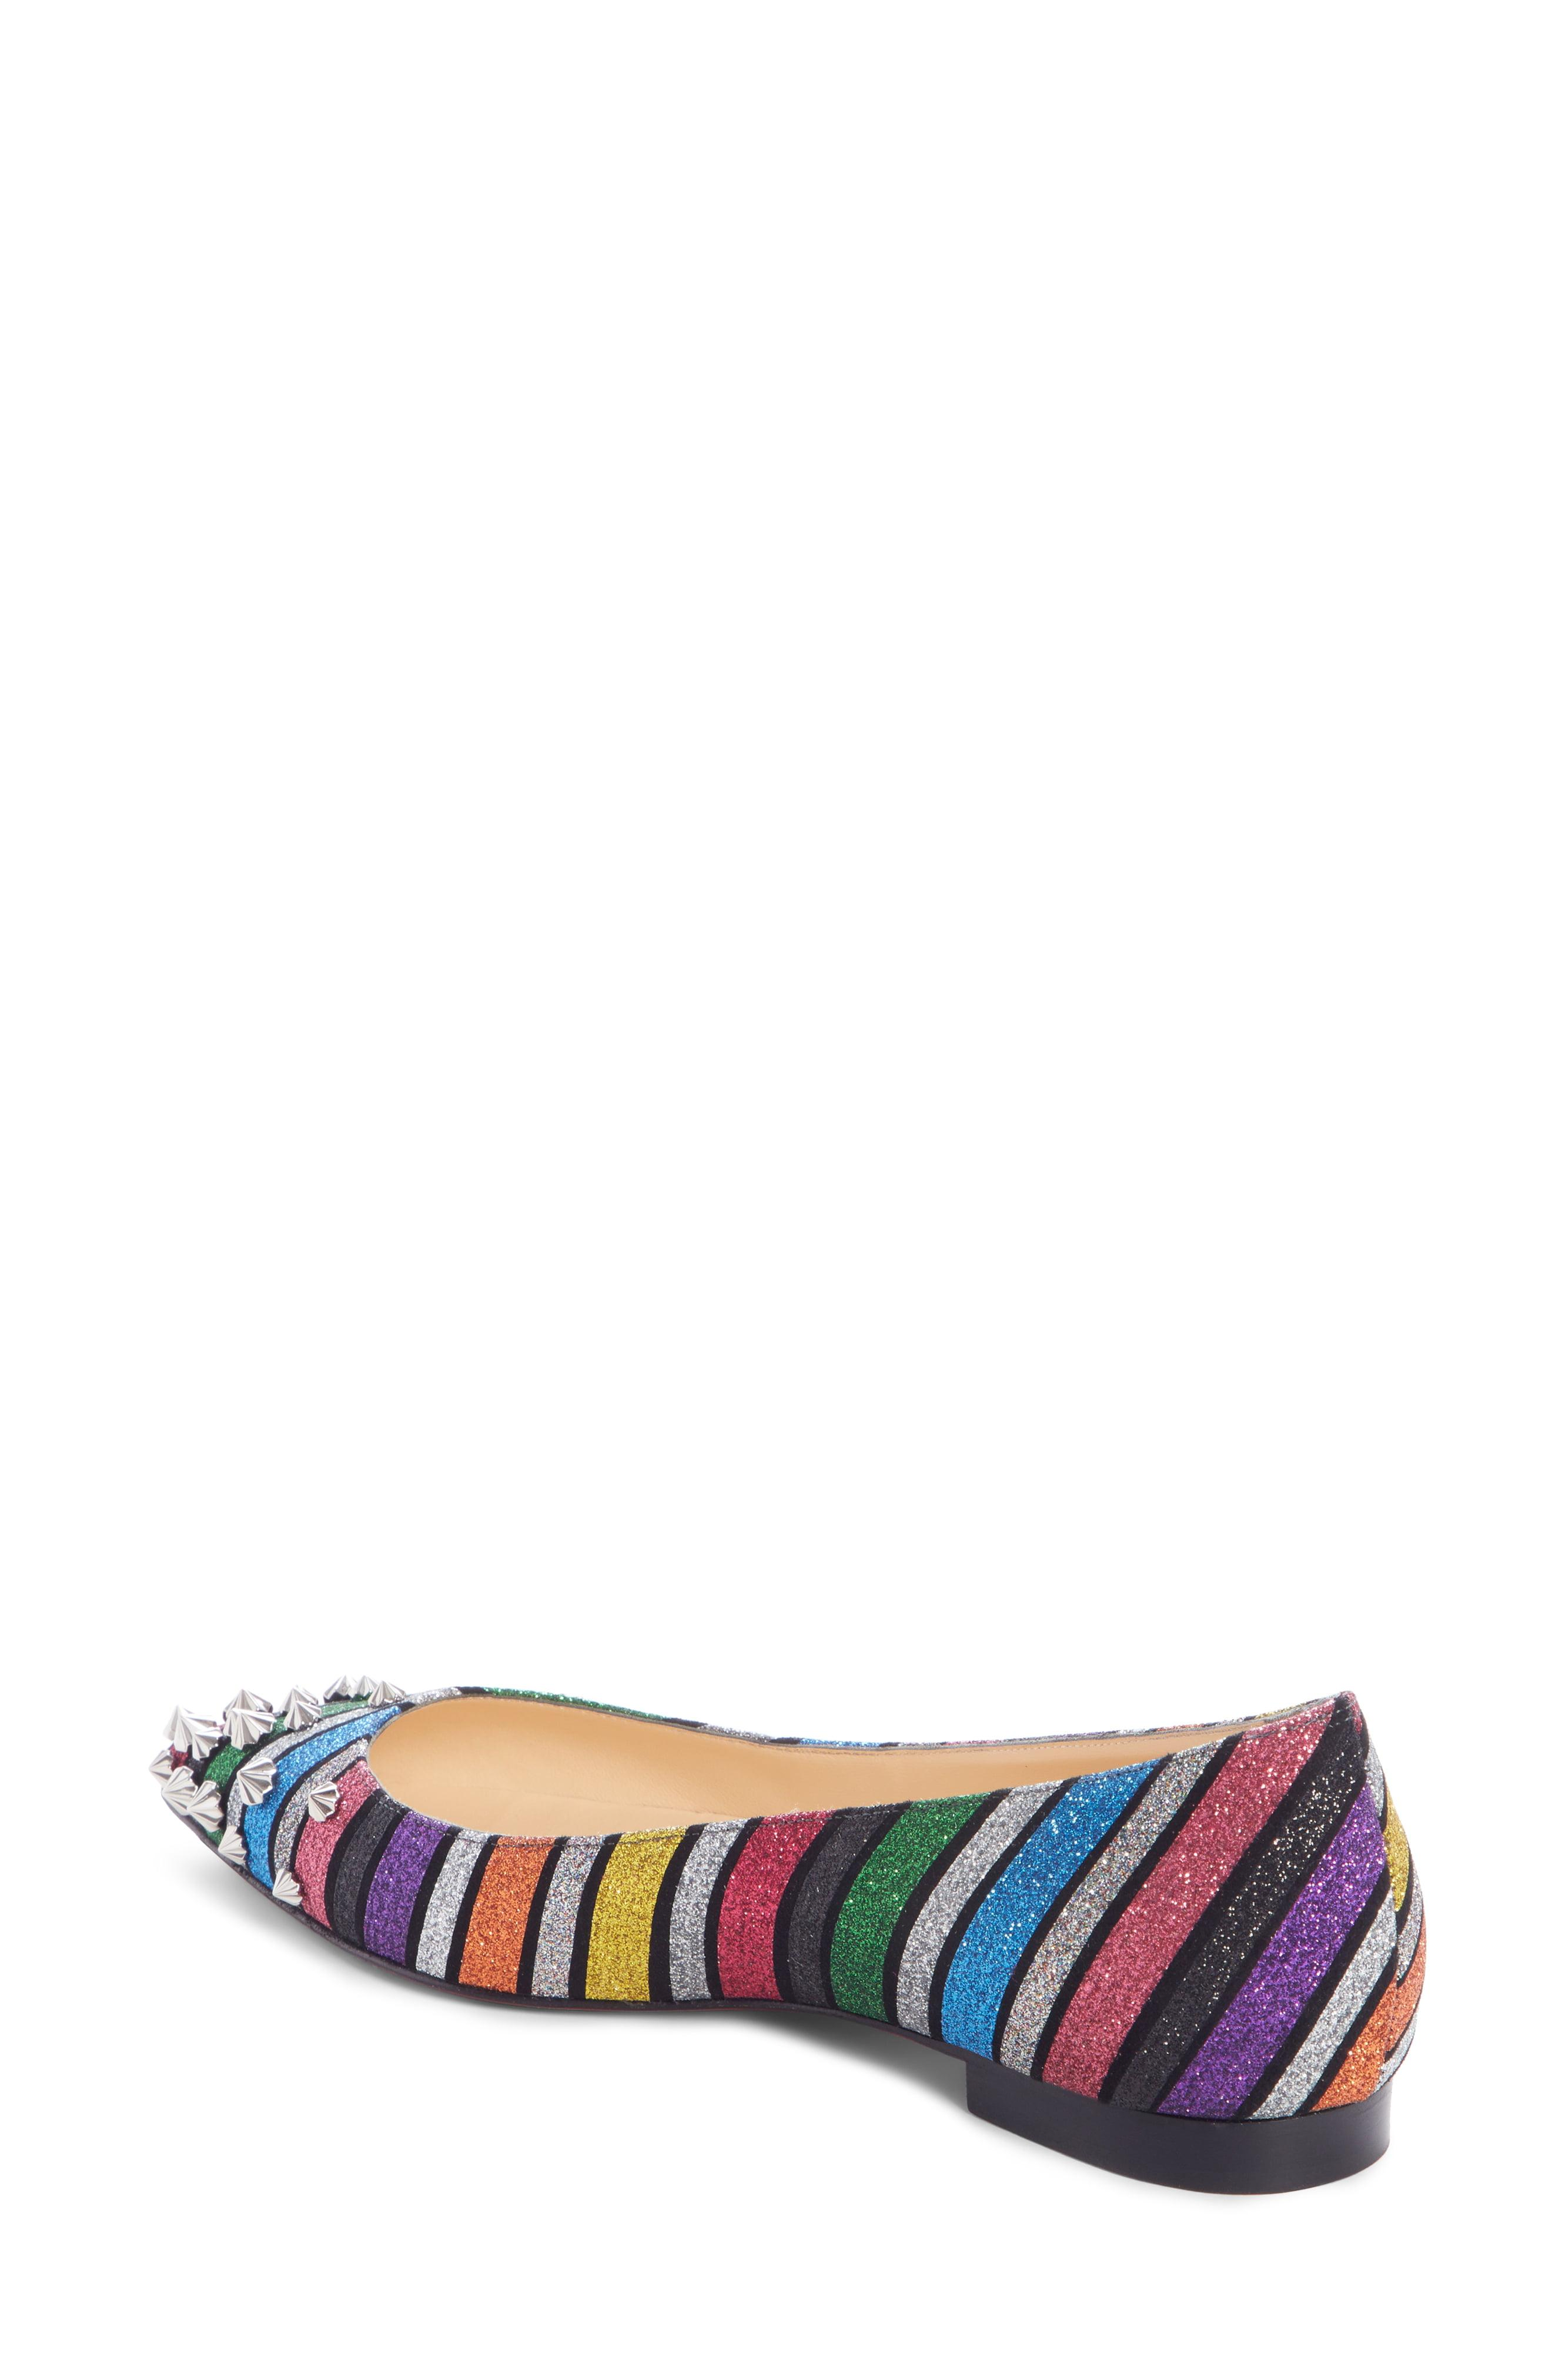 e20706dd0229 Christian Louboutin - Multicolor Drama Striped Studded Flat - Lyst. View  fullscreen